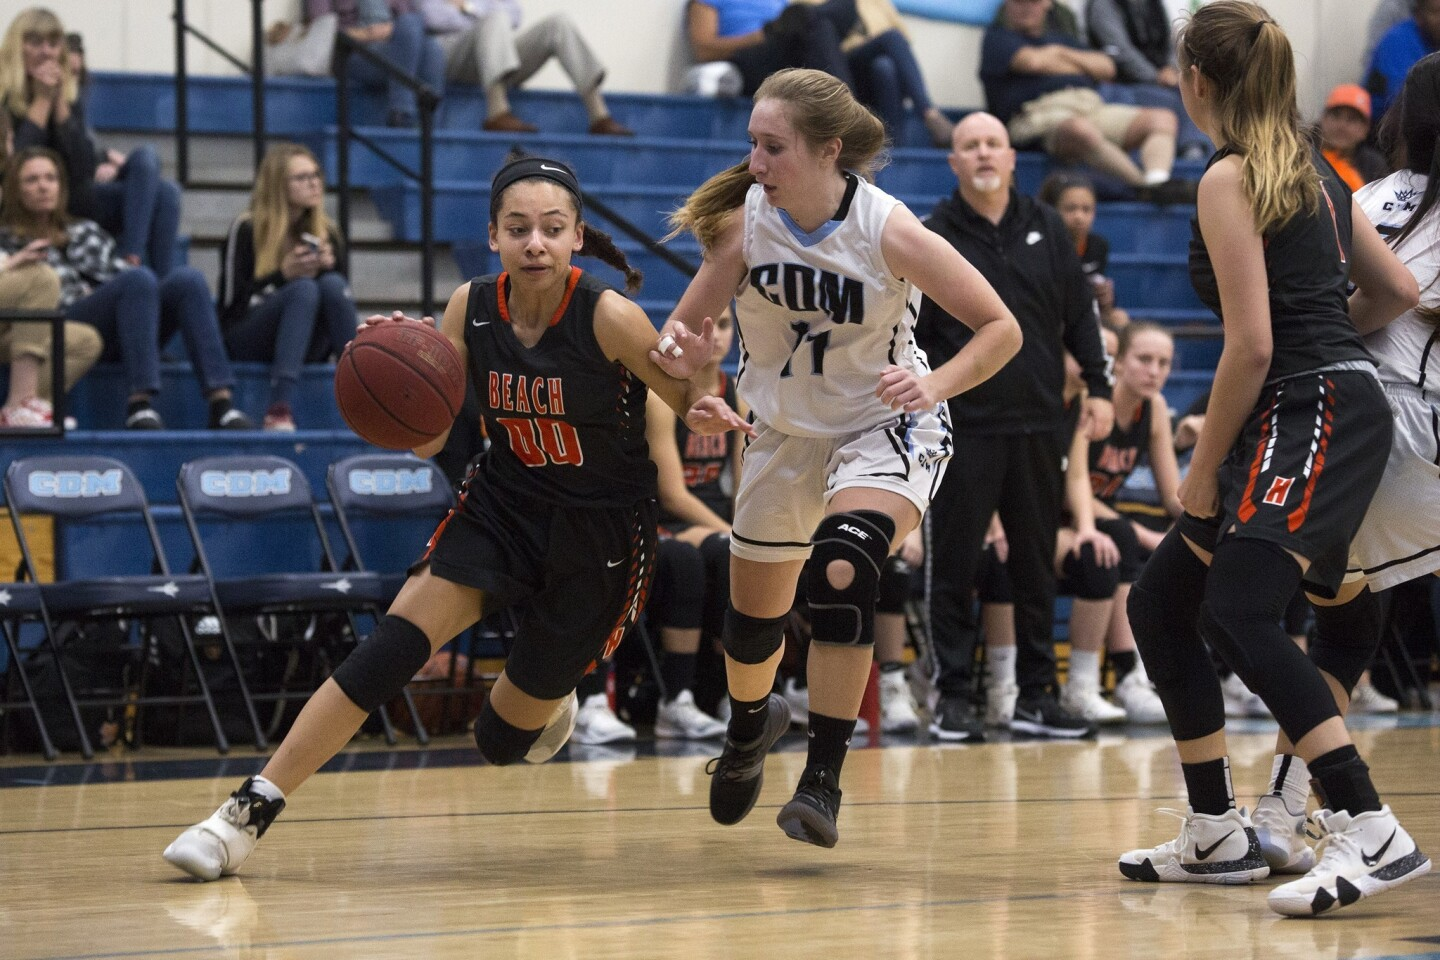 Huntington Beach High's Meghan McIntyre dribbles past Corona del Mar's Lexie Howell and scores during a Surf League game on the road Tuesday.